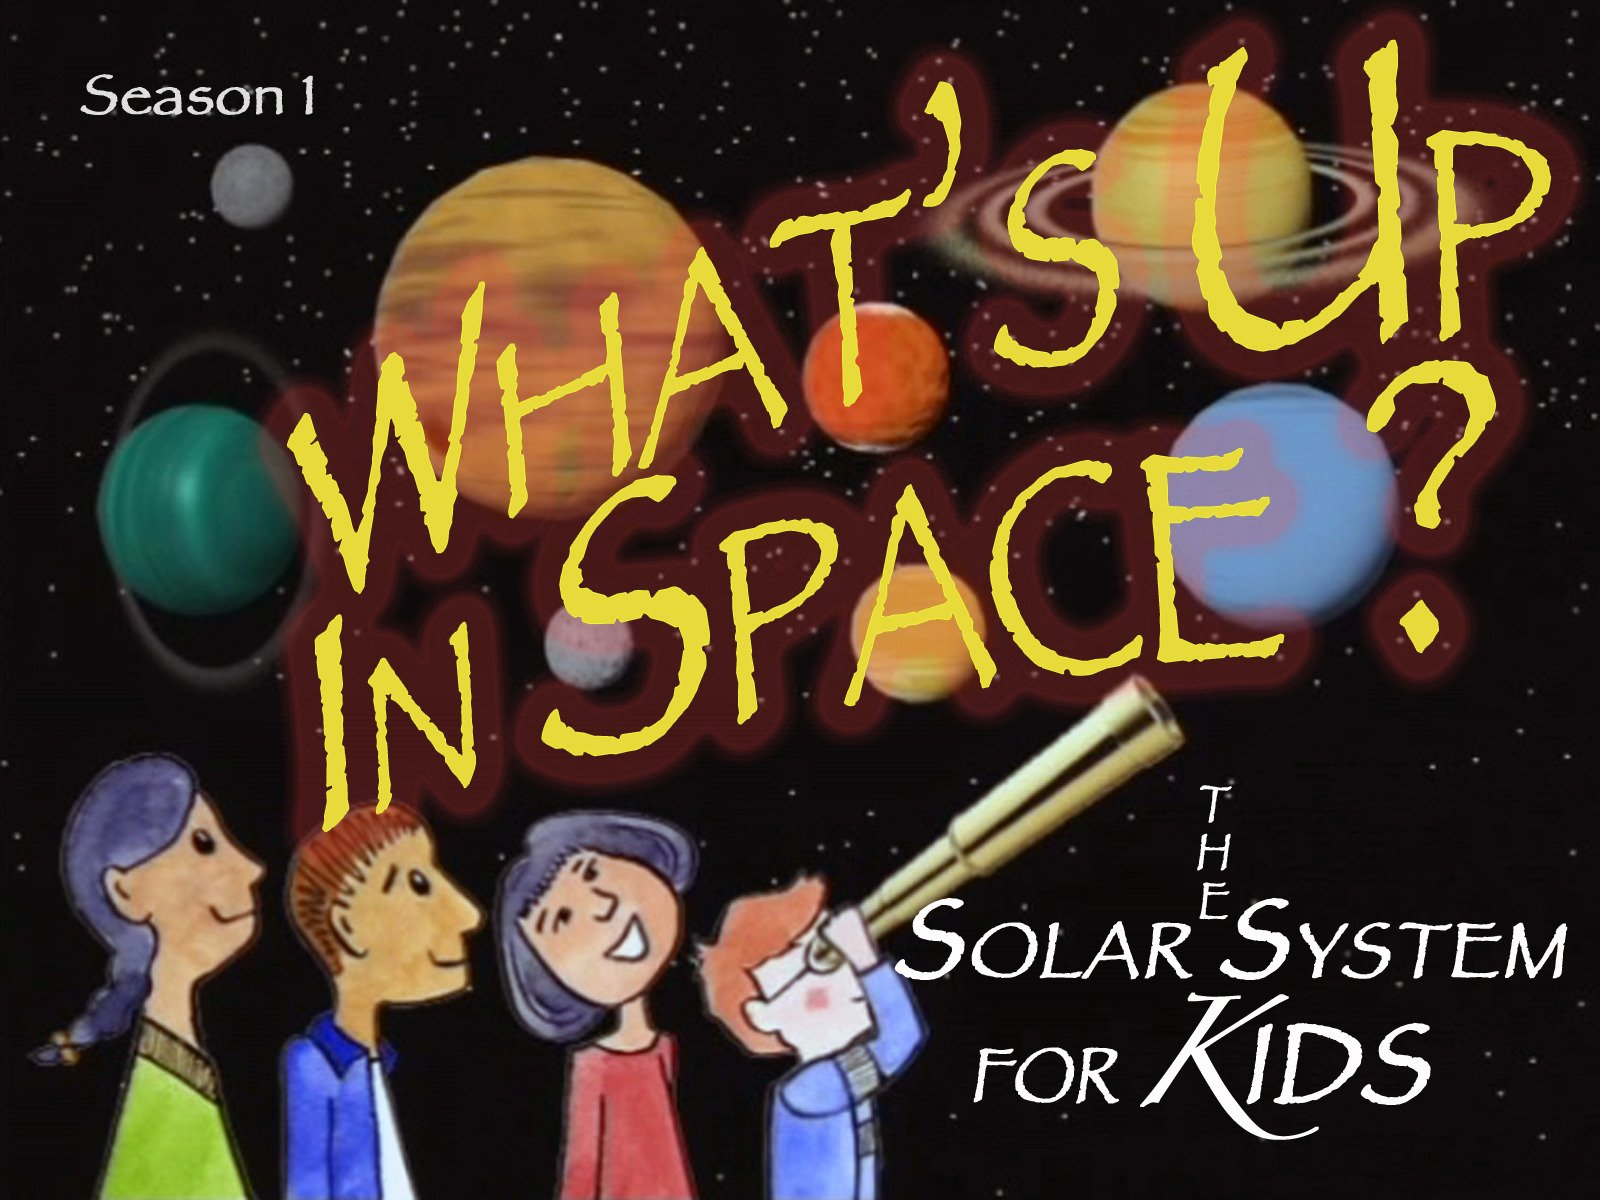 What's Up In Space: The Solar System For Kids - Season 1